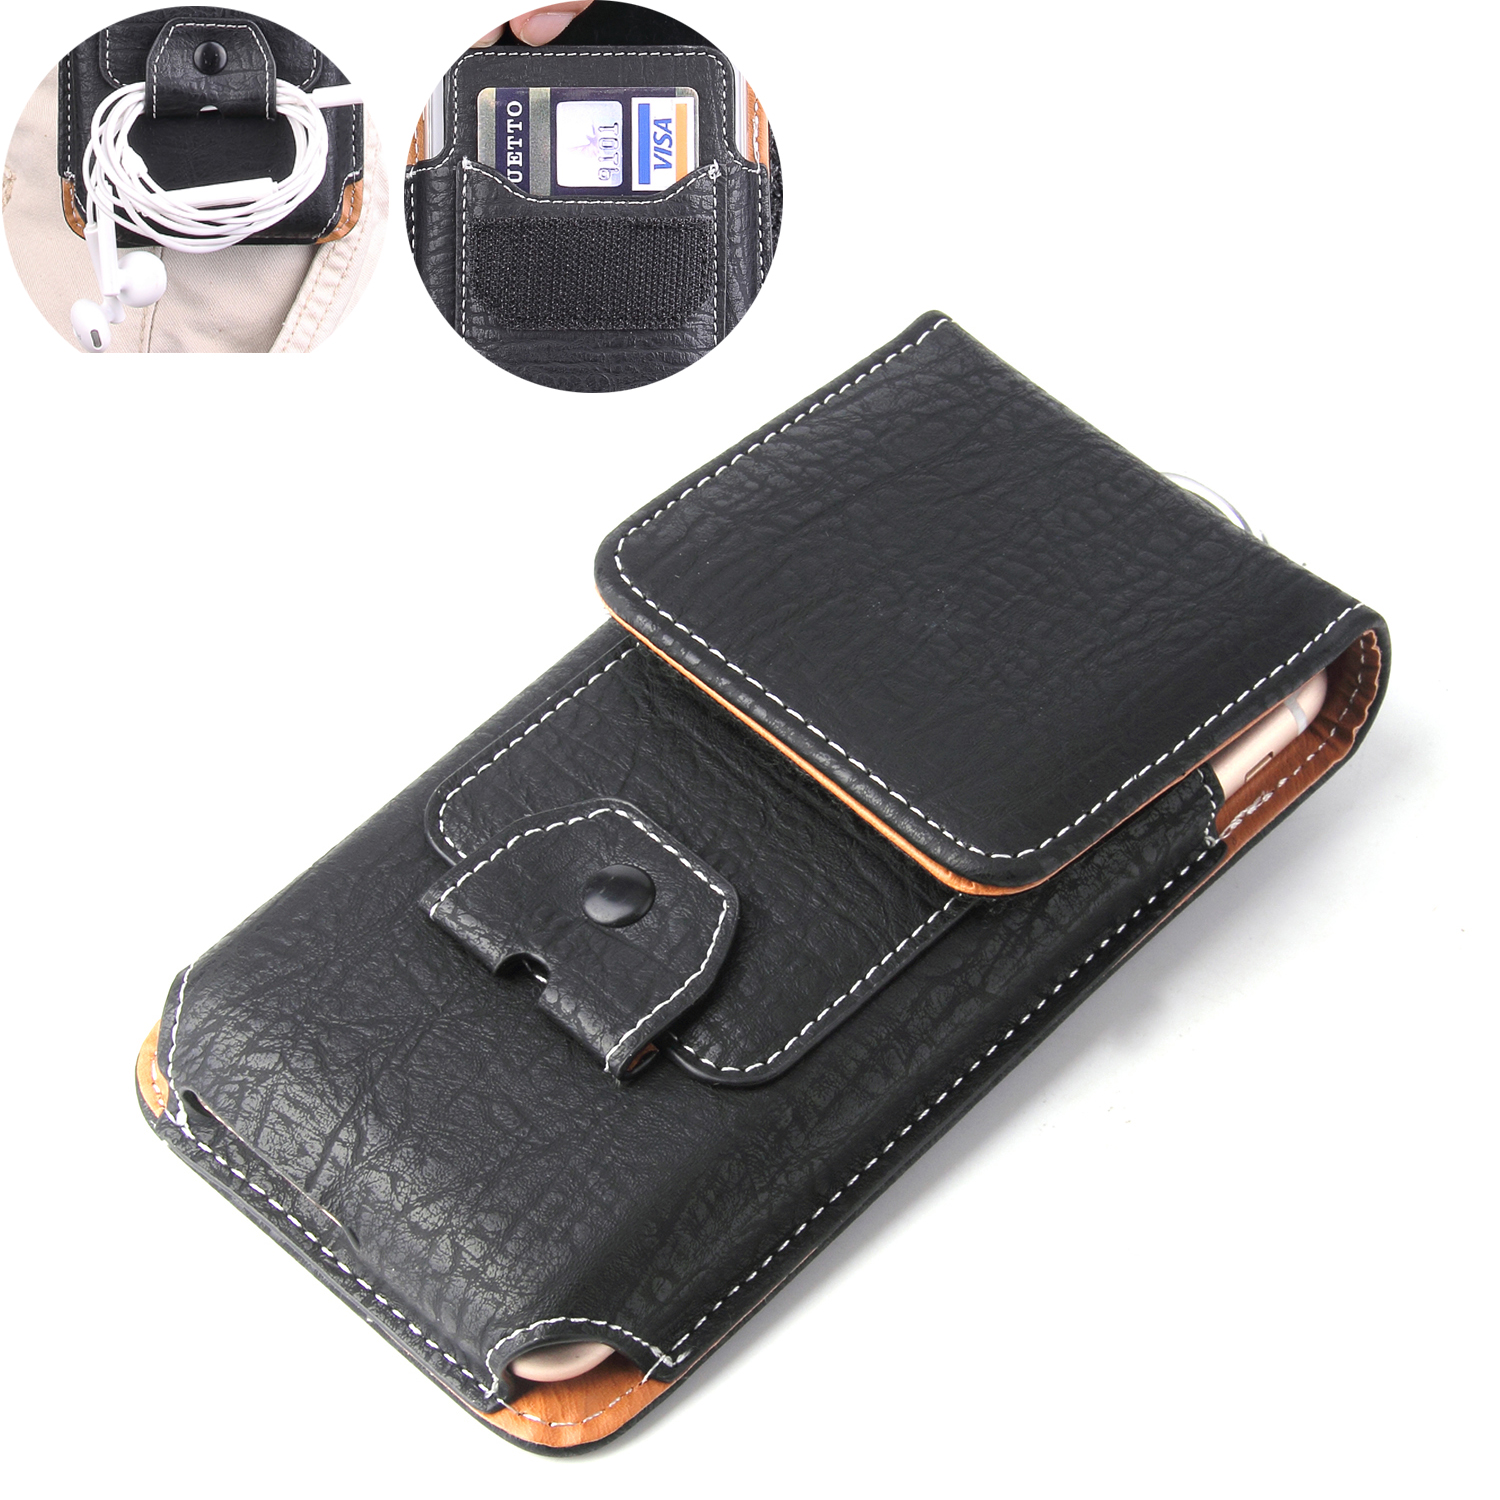 Universal Pouch Leather Case For Vivo Y81i Y81S Y55S Y53i Y29L Y35 Y31L Y18L Waist Bag Magnetic holster Belt Clip Phone Cover